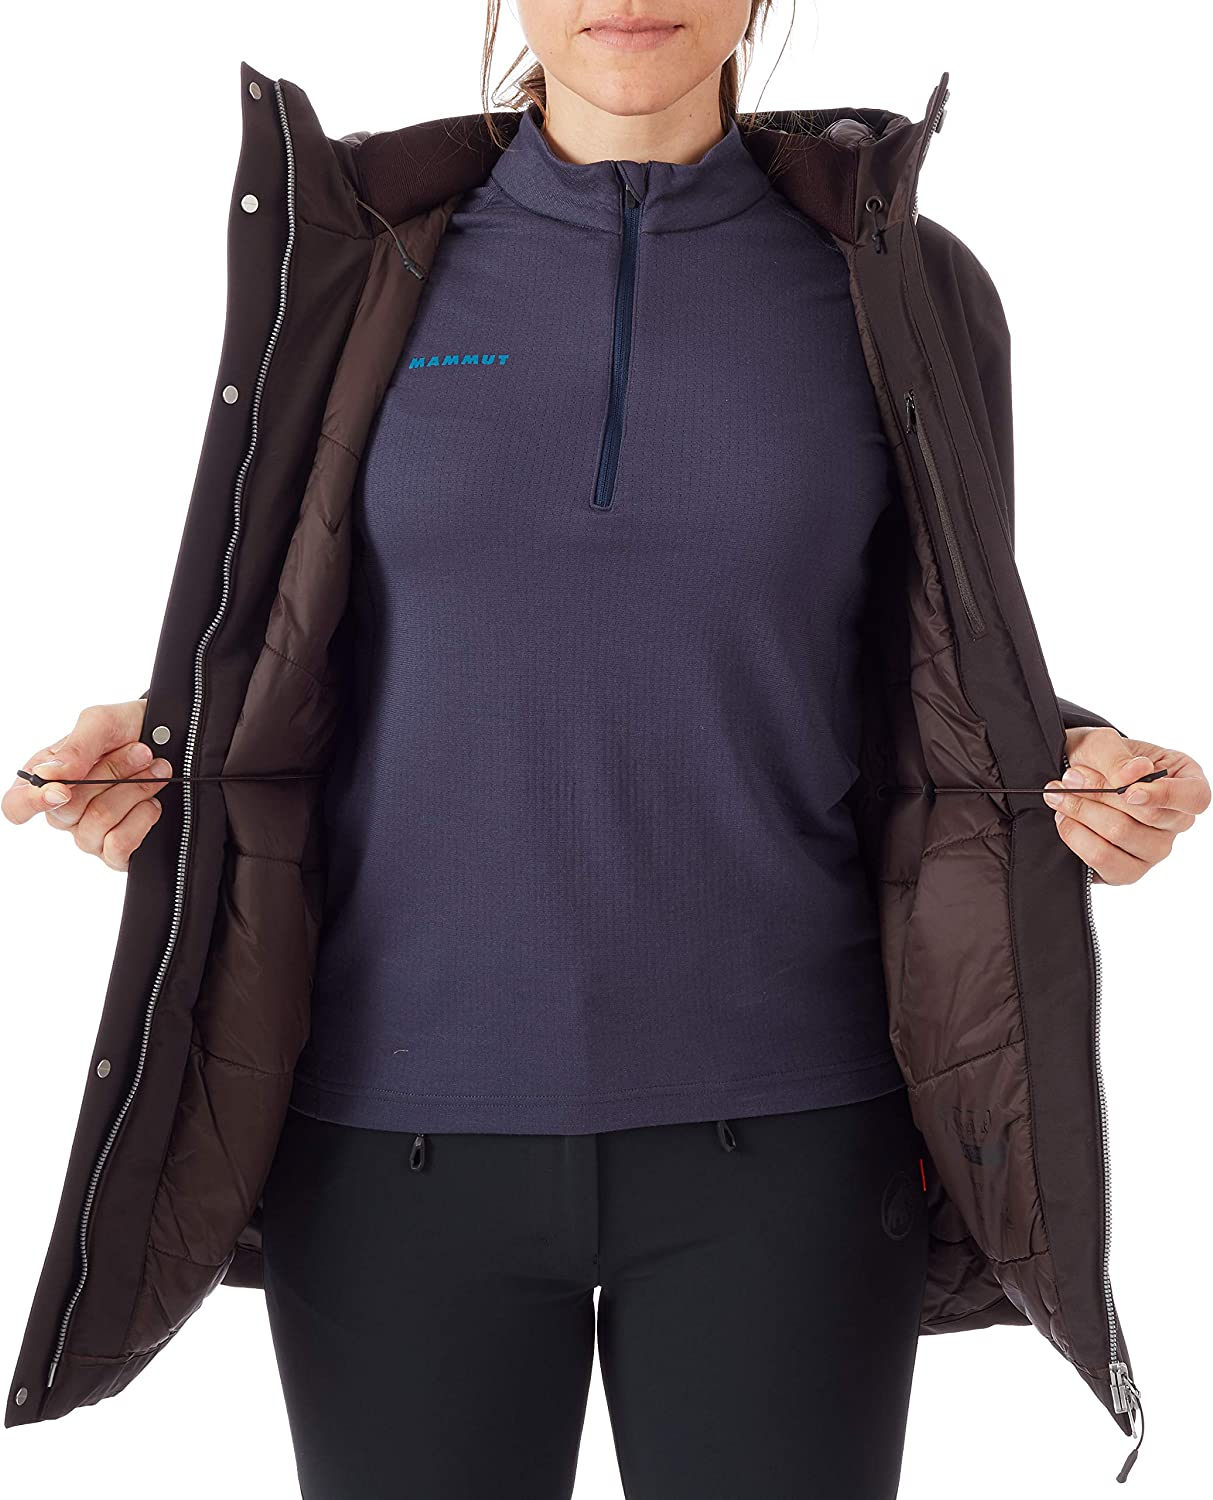 Mammut Chamuera Hs Thermo Hooded Parka Clothing